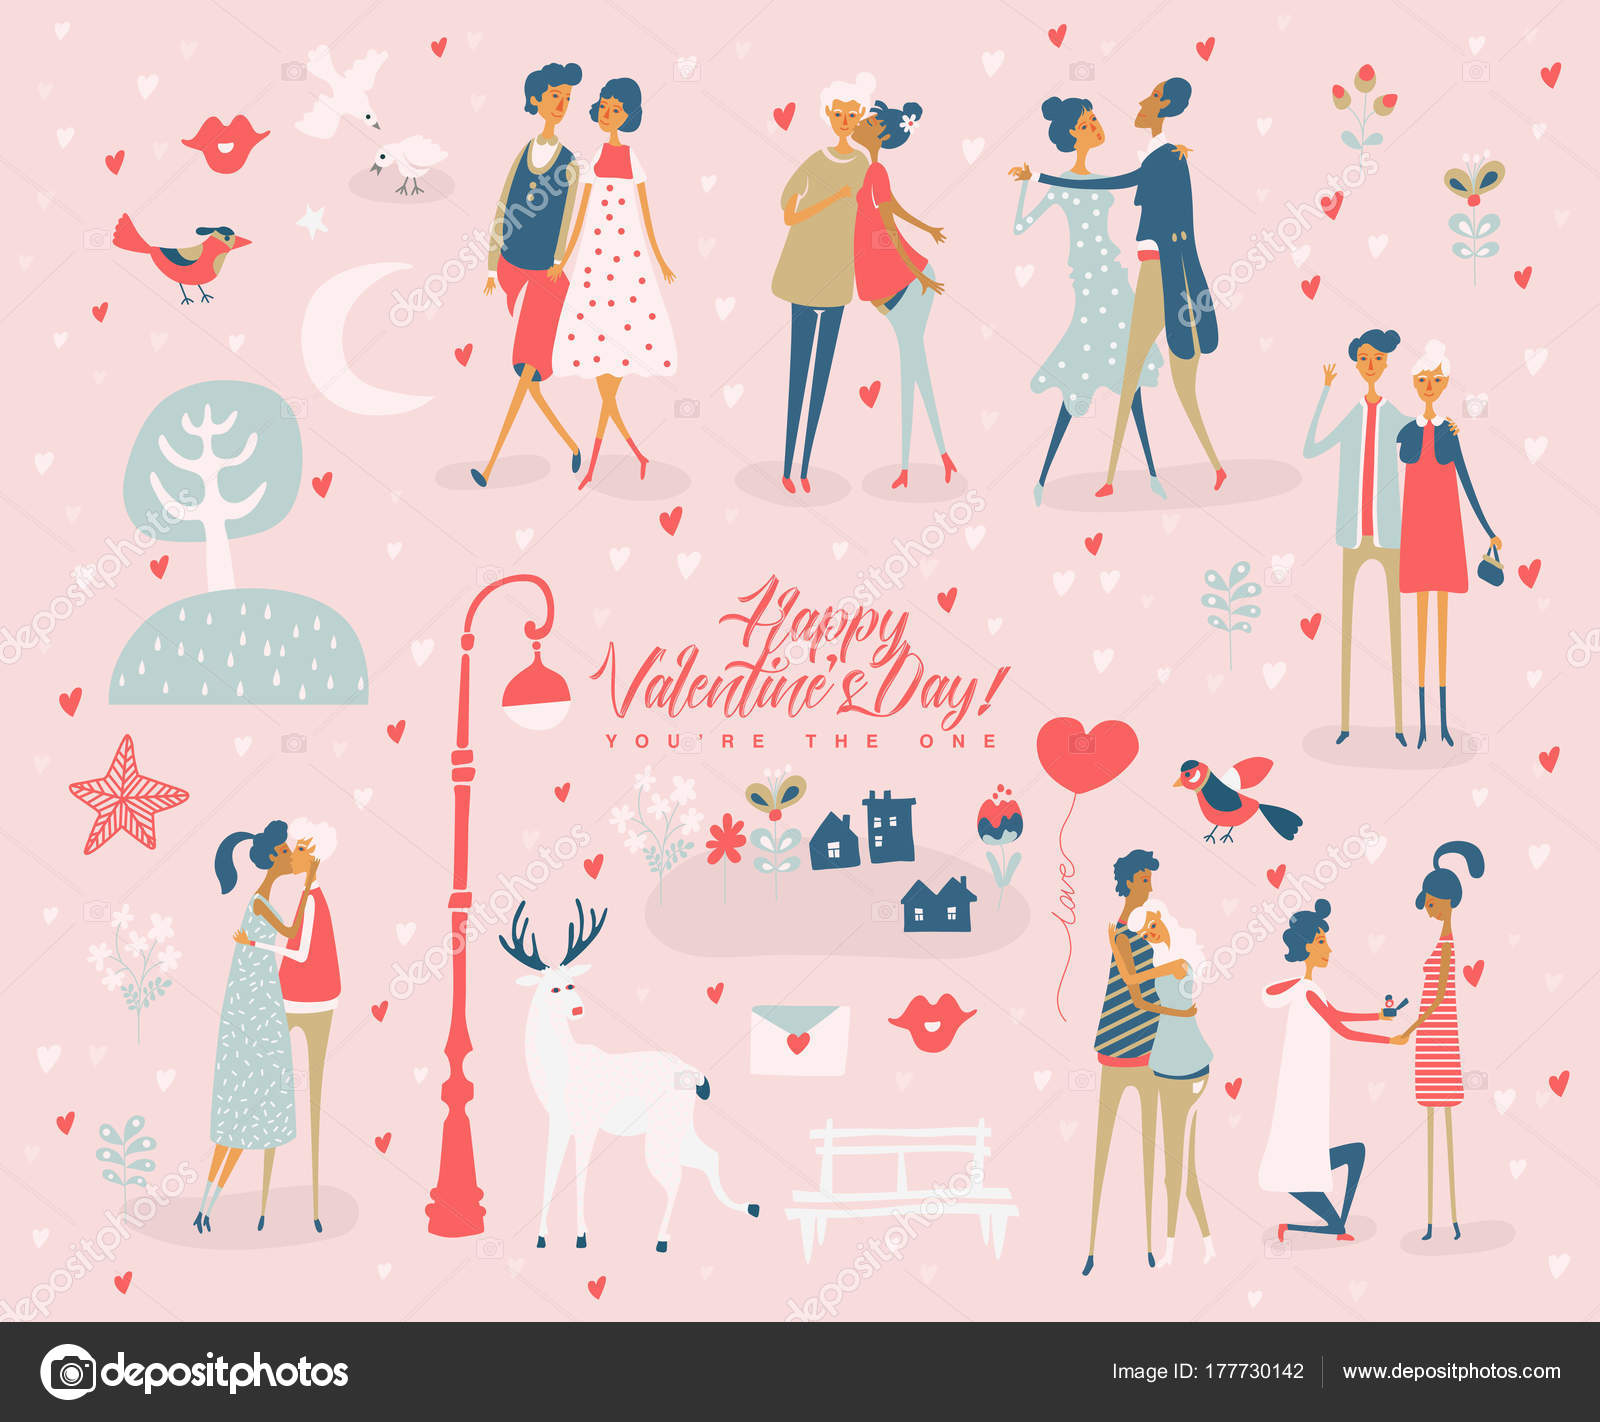 Valentine Day Vector Greeting Card Cute Lovers Boyfriend Girlfriend